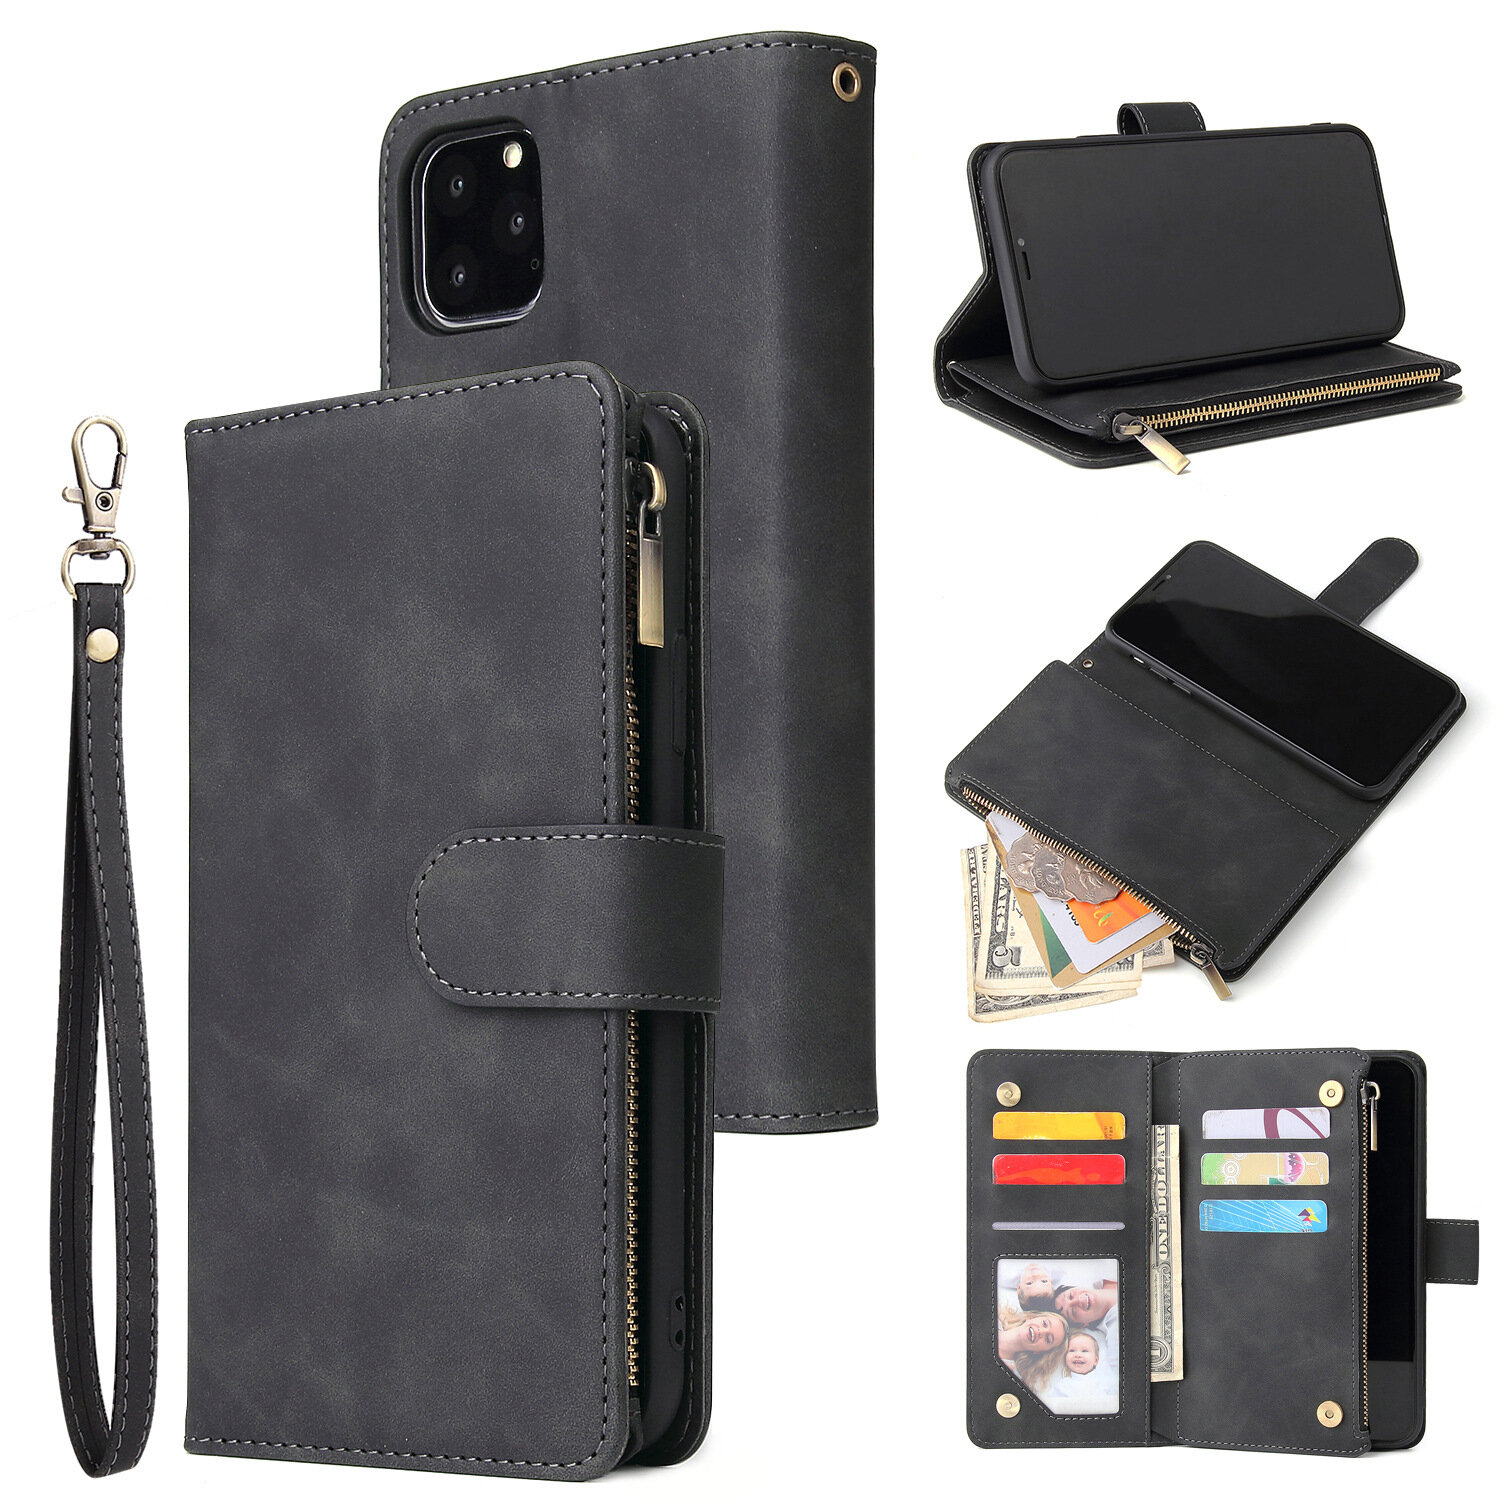 Luxury Flip PU Leather Zipper Wallet Phone Bag Multi Card Slots Protective Case for iPhone 11 / Pro / Pro Max / XR